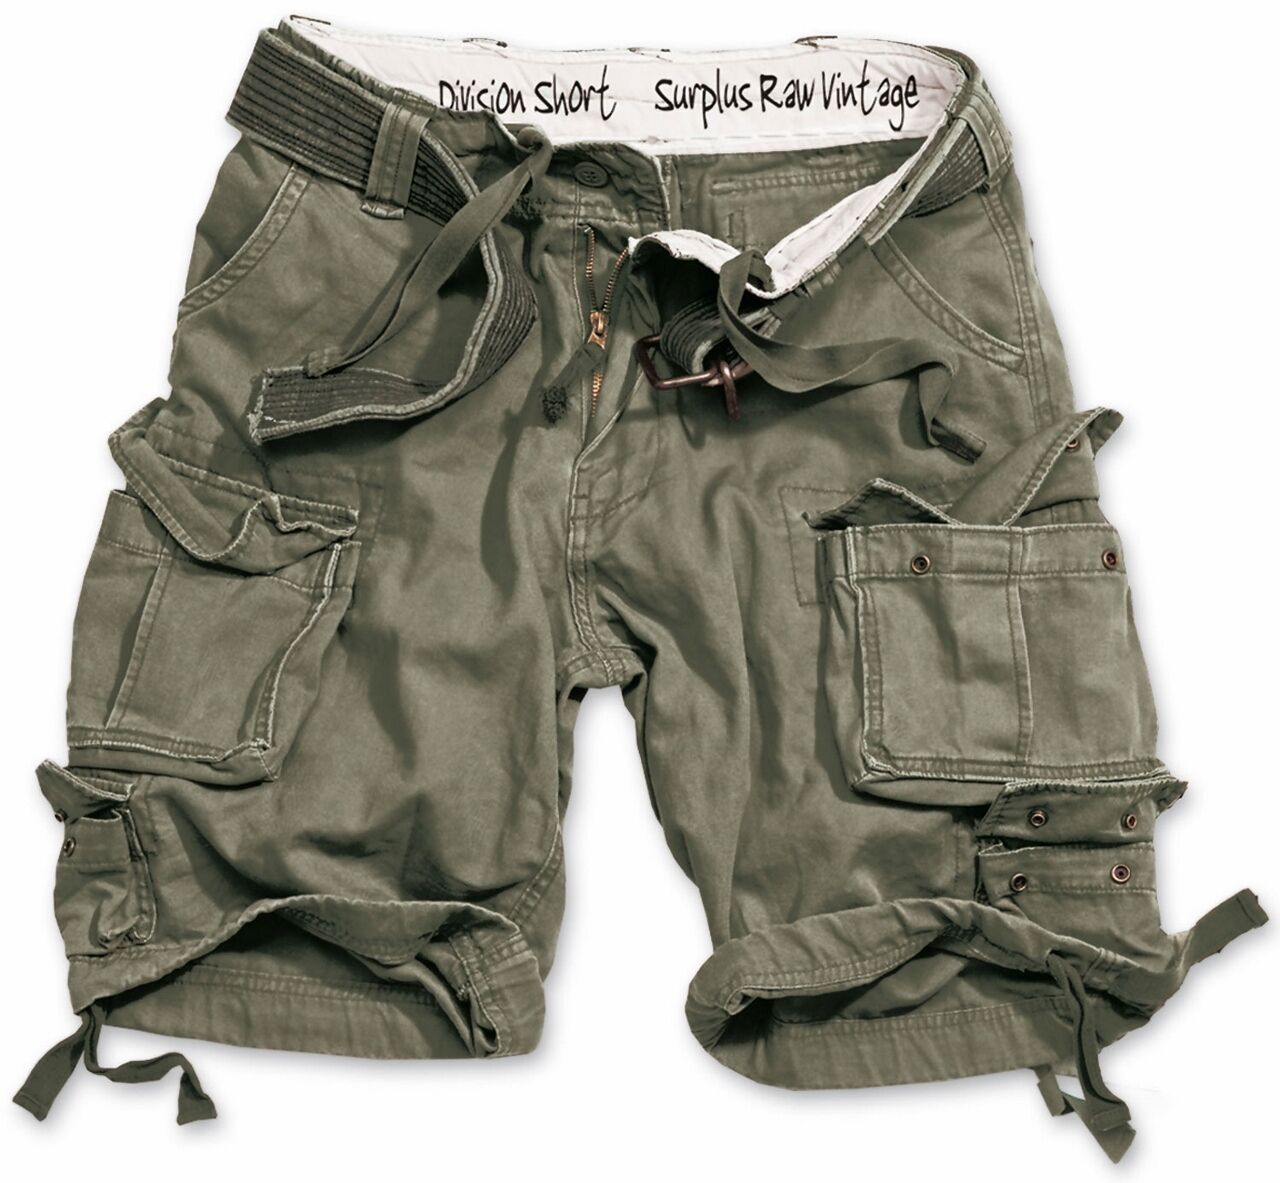 SURPLUS ARMY MENS  DIVISION CARGO SHORTS COMBAT KNEE LENGTH & DELUXE BELT OLIVE  enjoy saving 30-50% off